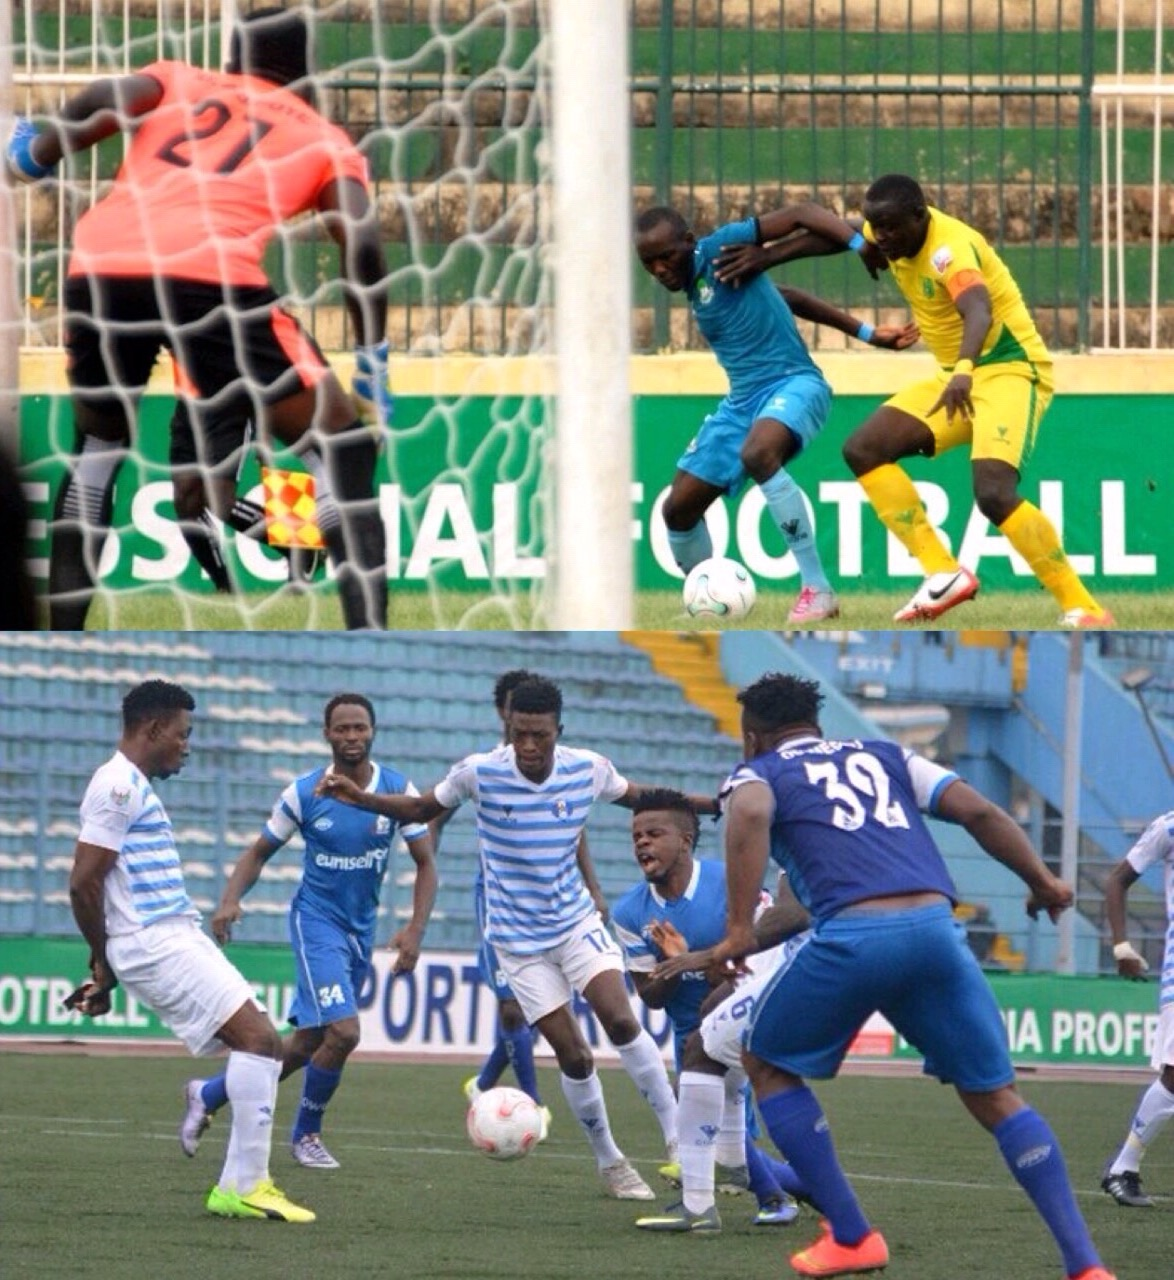 NPFL MATCHDAY-27: Plateau Face Tricky Test At El Kanemi; Akwa Host Enyimba